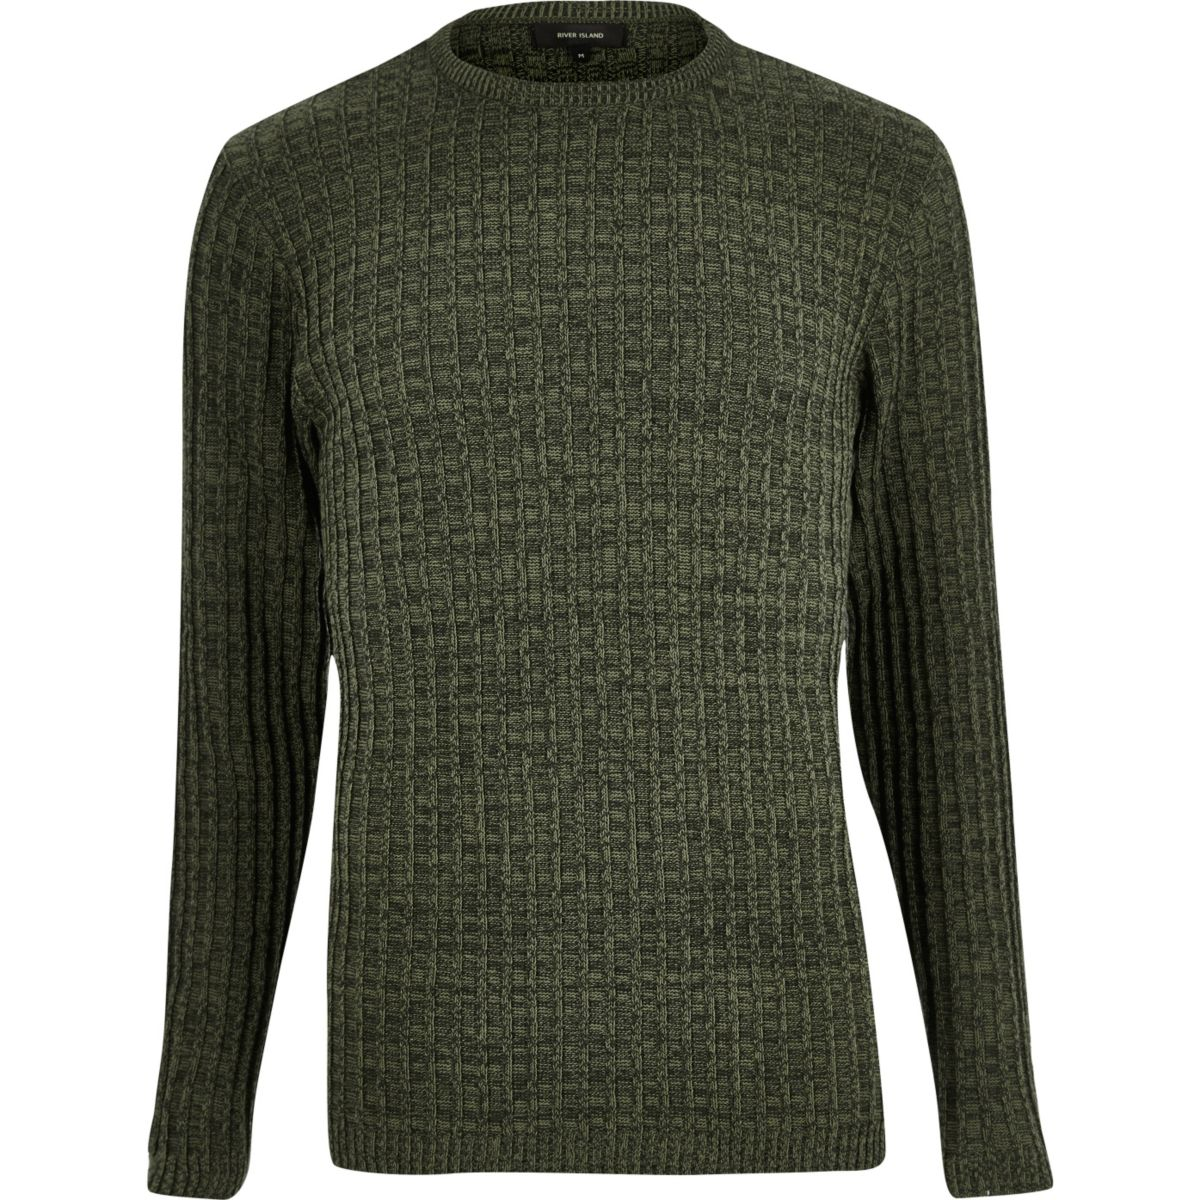 Dark green ribbed sweater